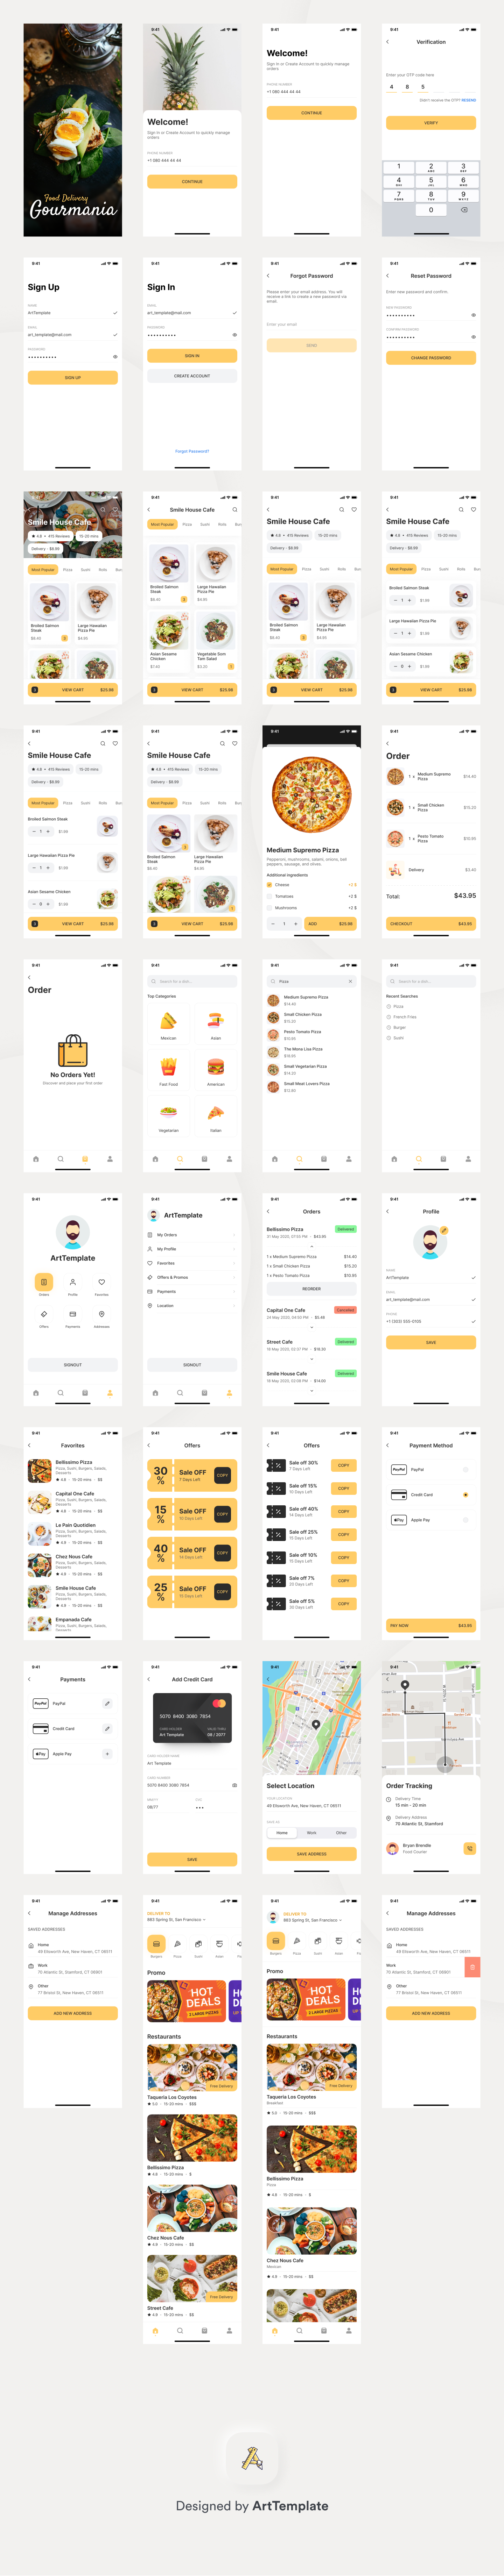 Gourmania - Food Delivery App